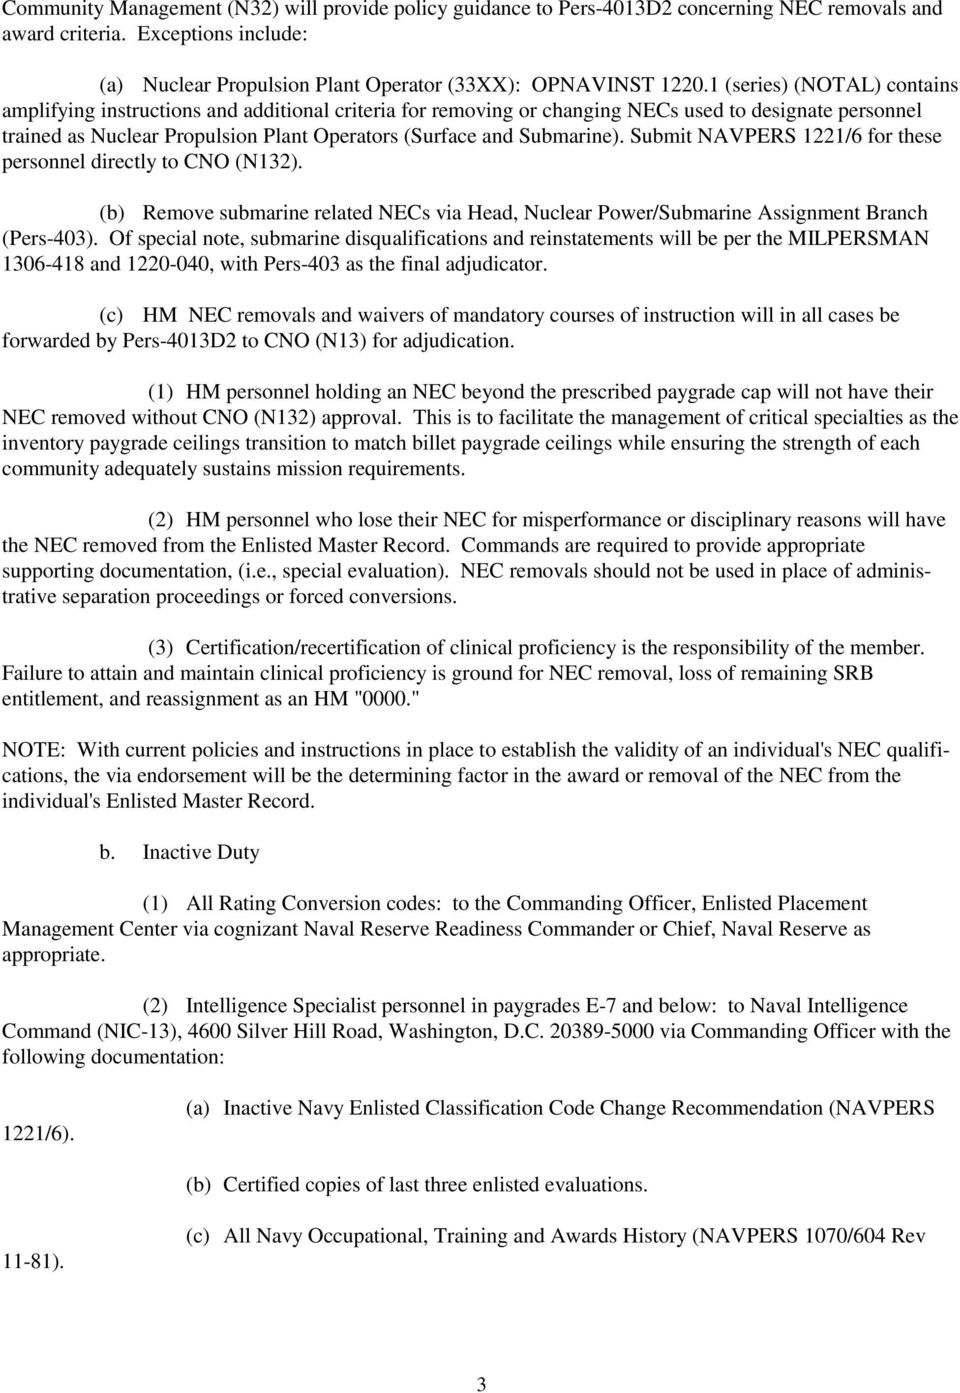 manual of navy enlisted manpower and personnel classifications and rh docplayer net